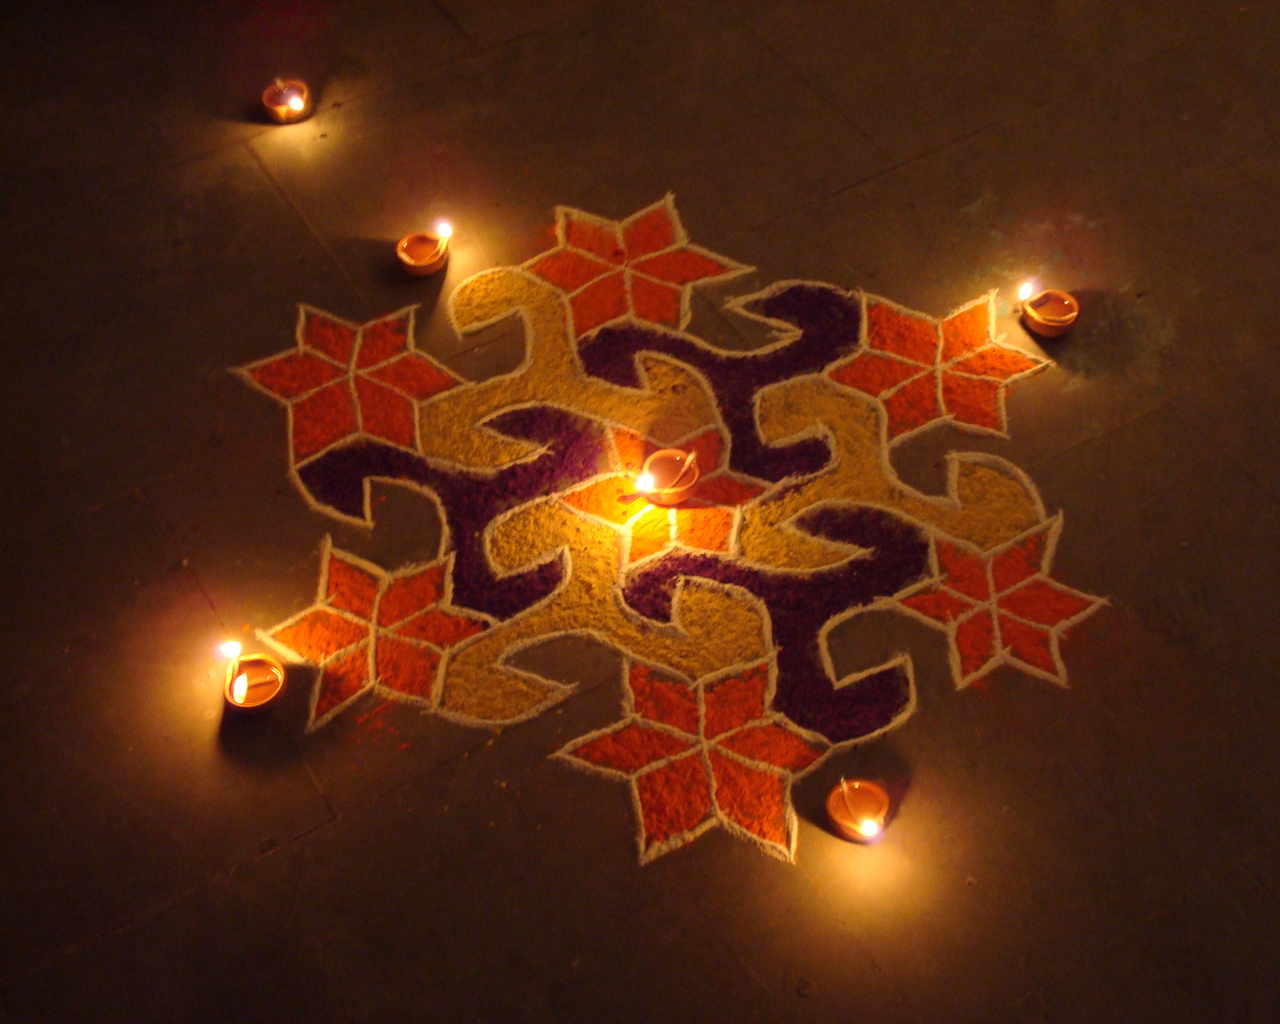 rangoli designs wallpaper stars - photo #43